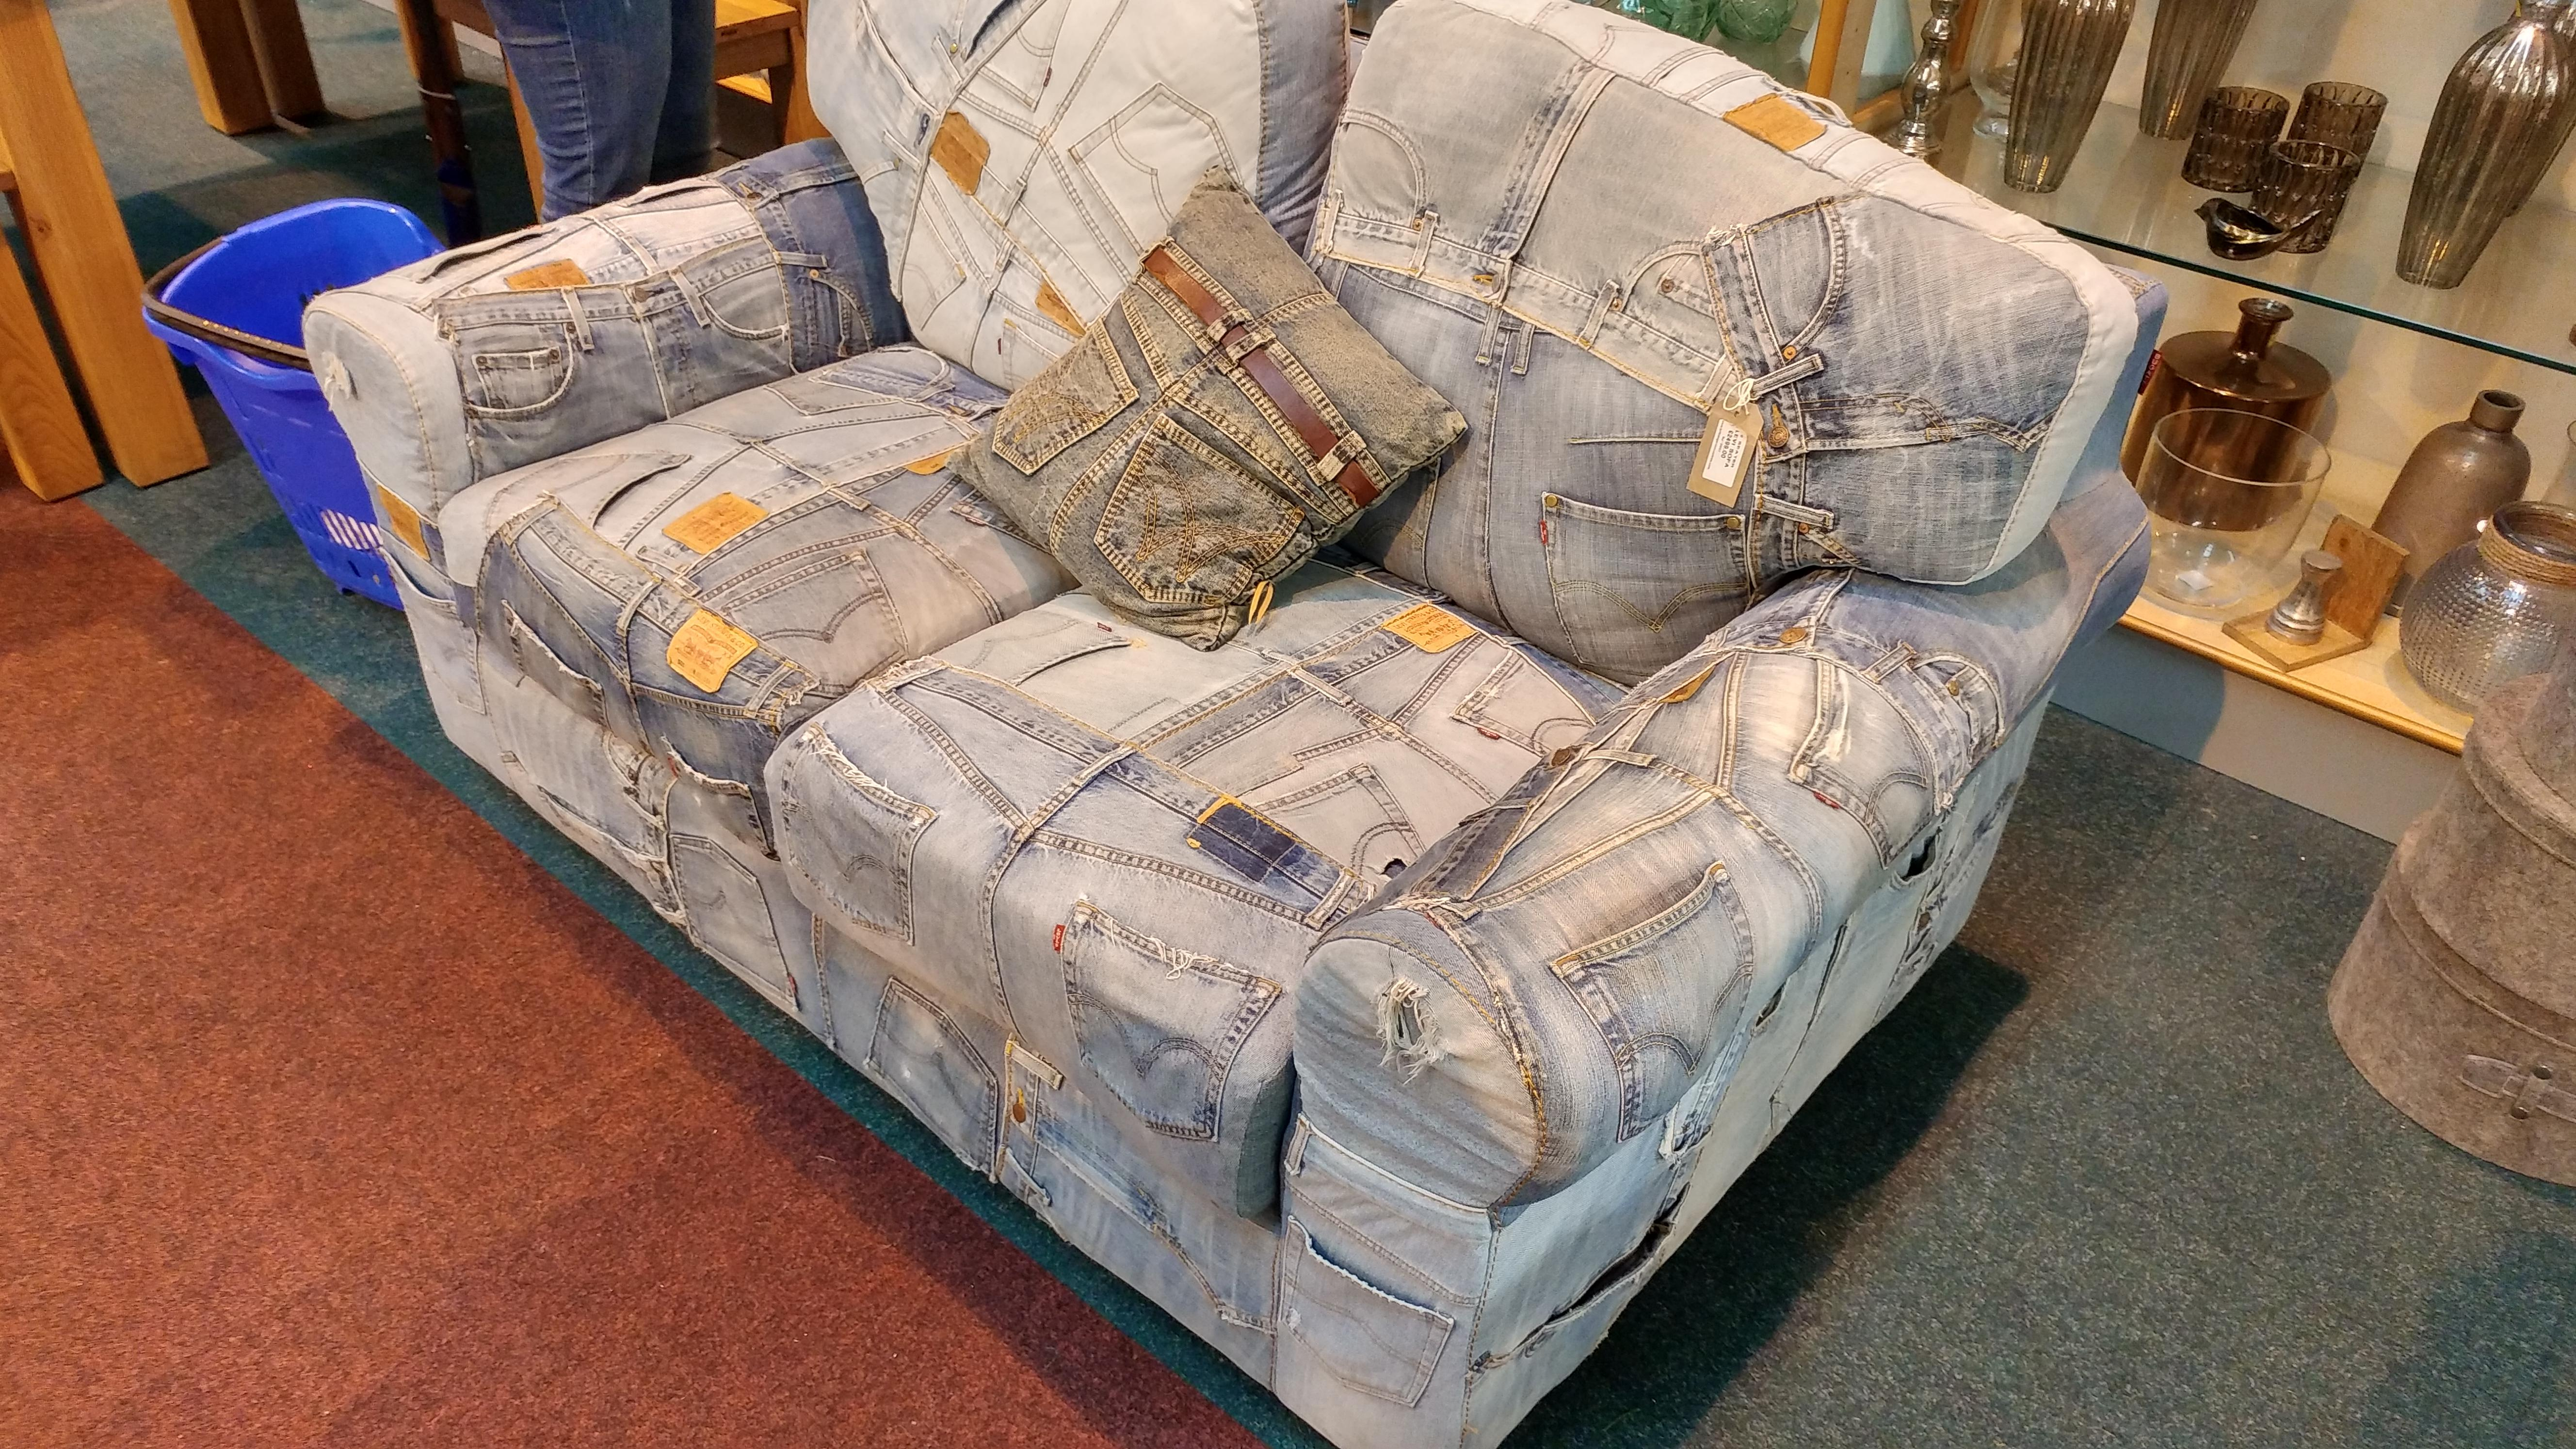 Sofa Couch Reddit This Jeans Sofa Denim Sofa What Do You Call This Thing Atbge